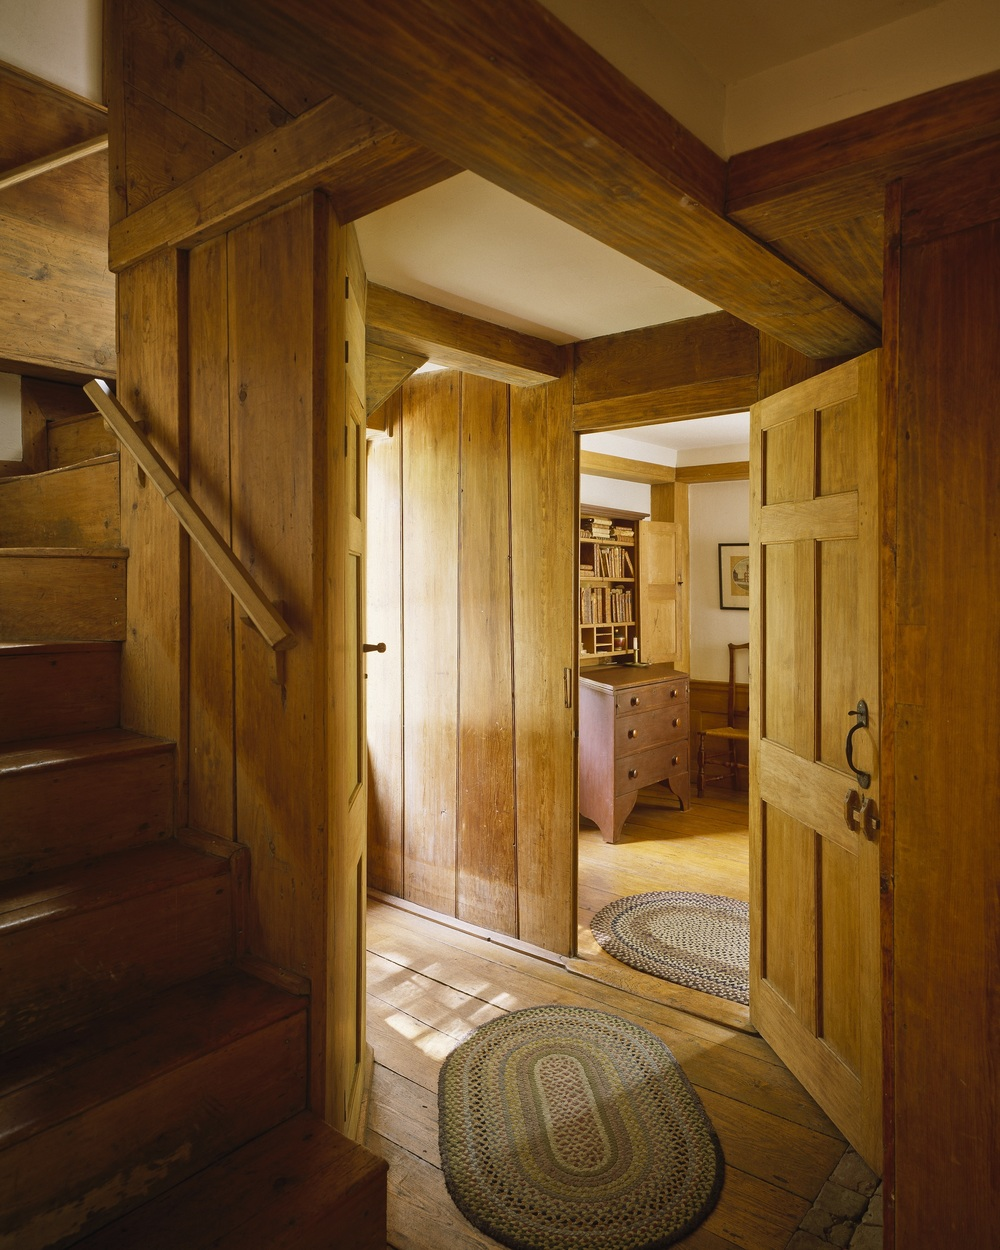 Jonathan Fisher's skill and taste are evident in the rooms of the home he designed and built himself in Blue Hill, ME.